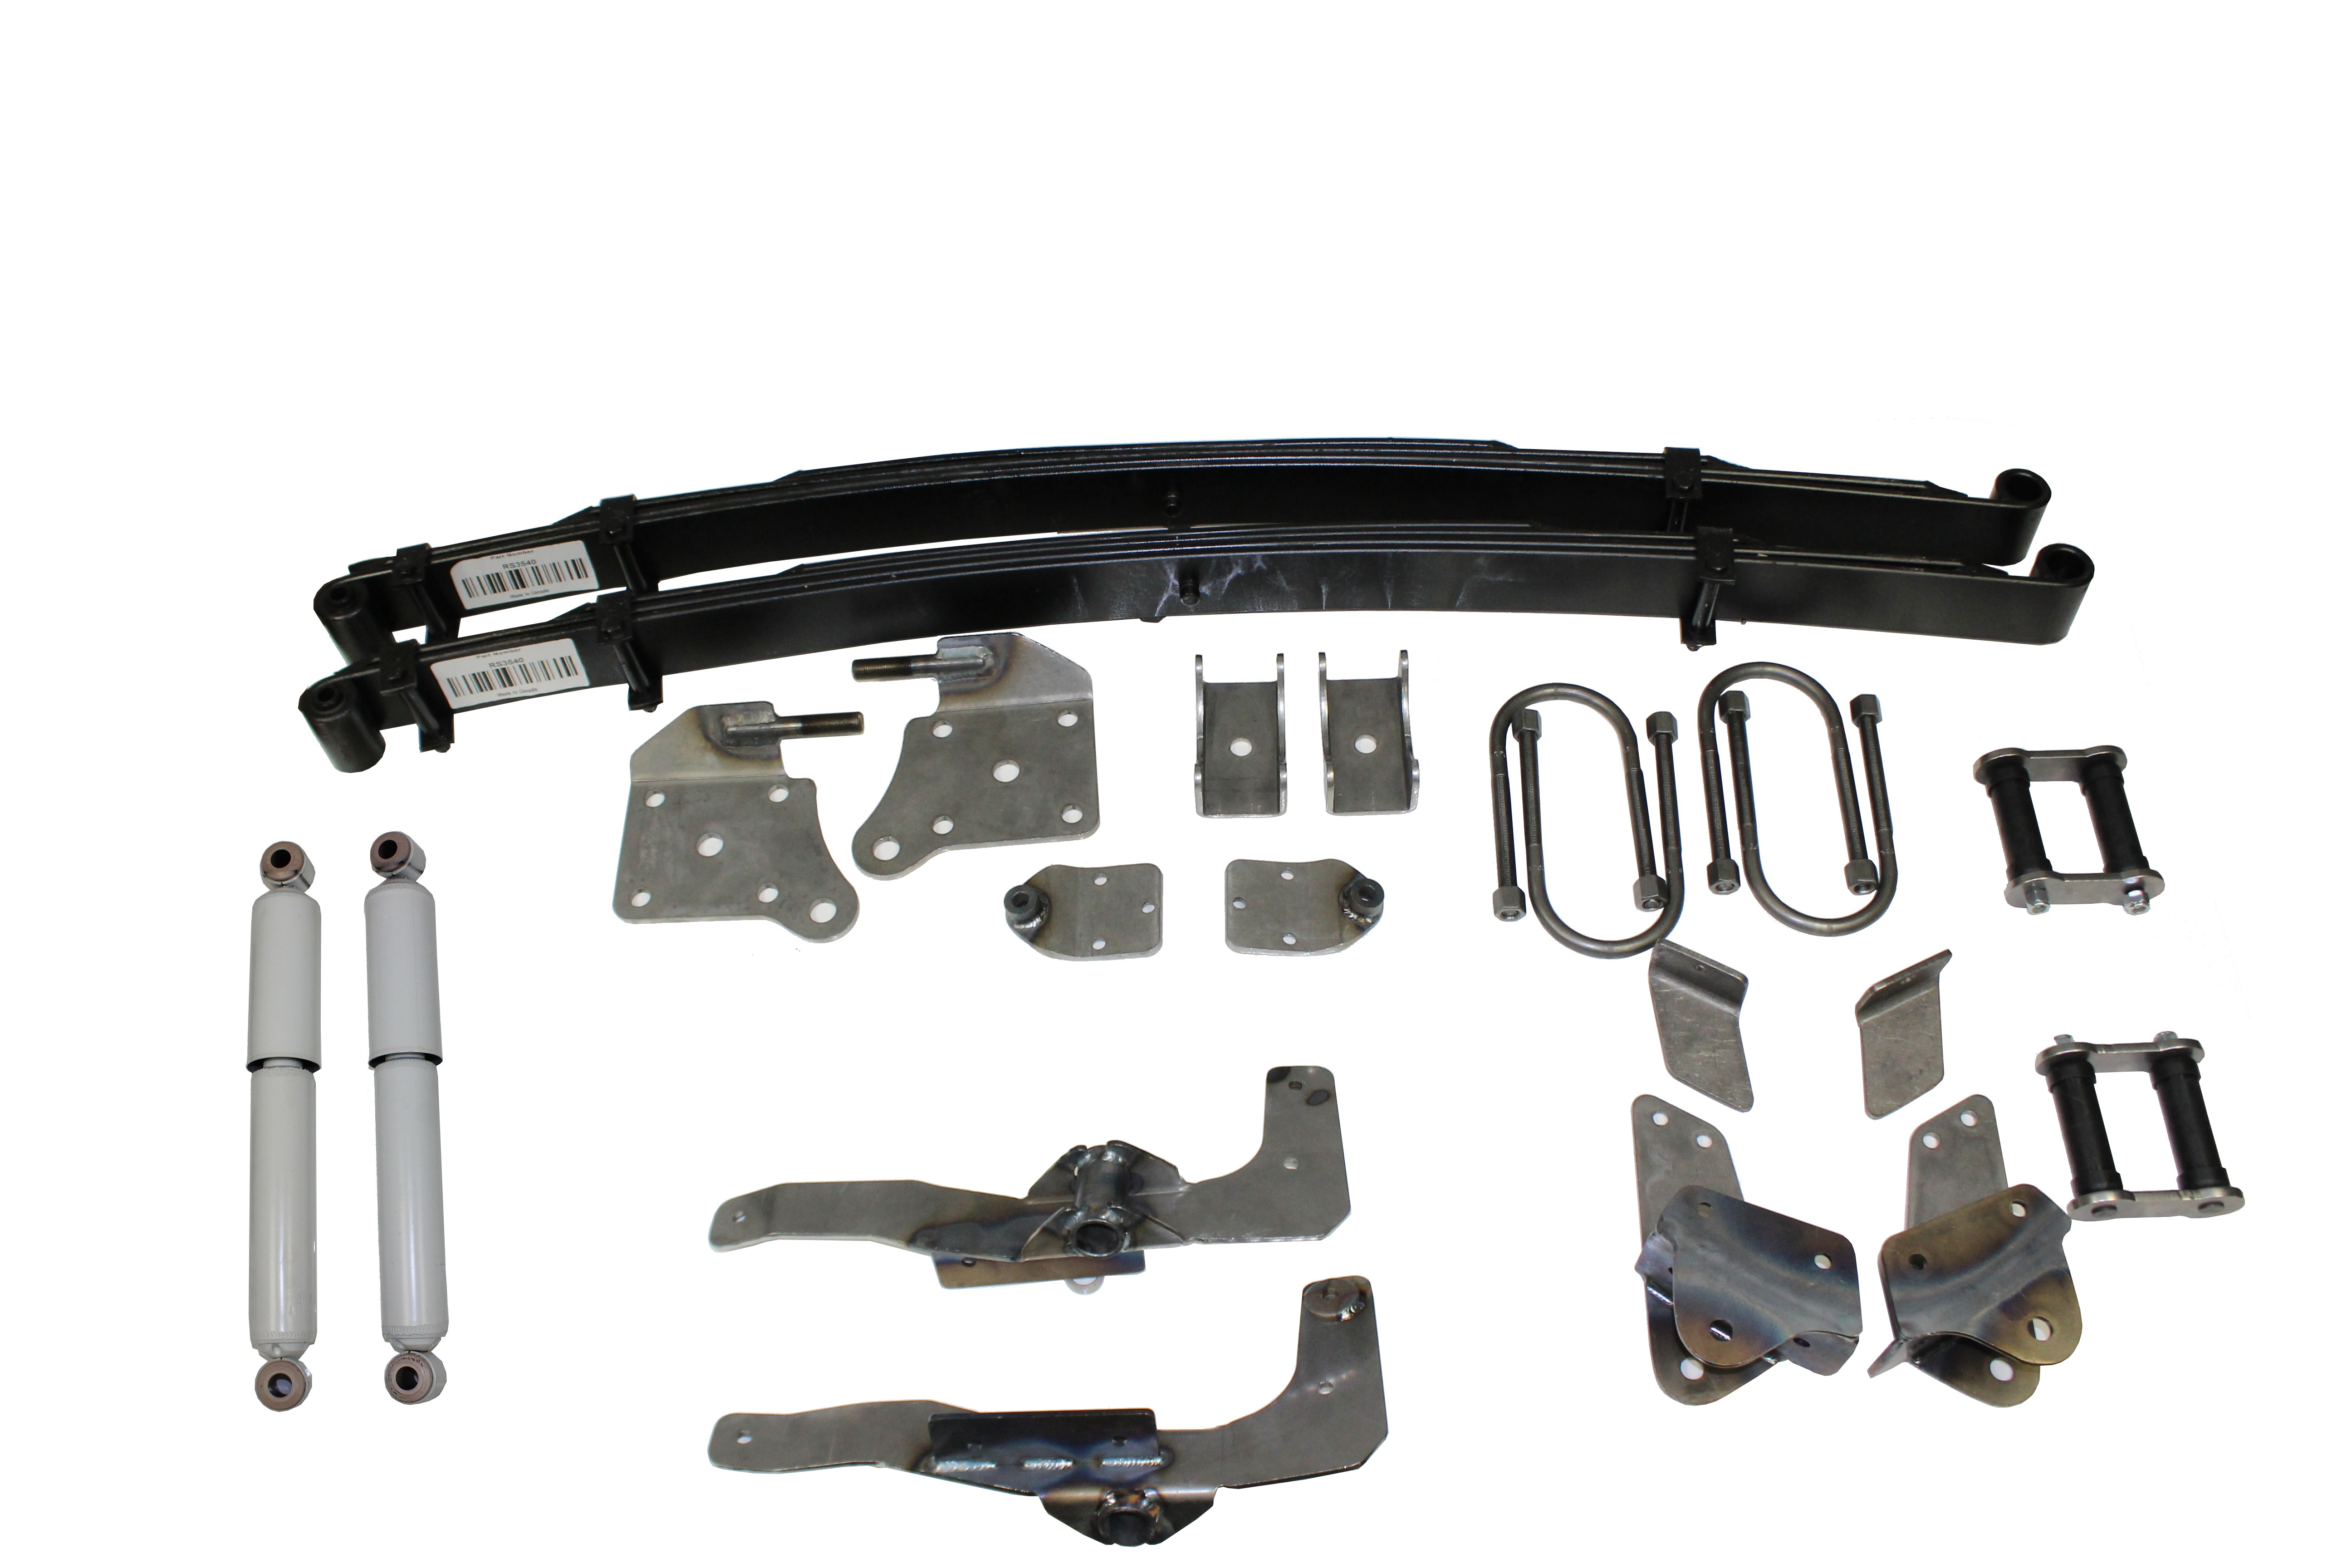 AS-2016CGHD Complete Leaf Spring Rear End Mounting Kit for late 1936-1940  Ford Car and 1935-1941 Ford Pickup Truck (Gas Shocks, Heavy Duty Springs)